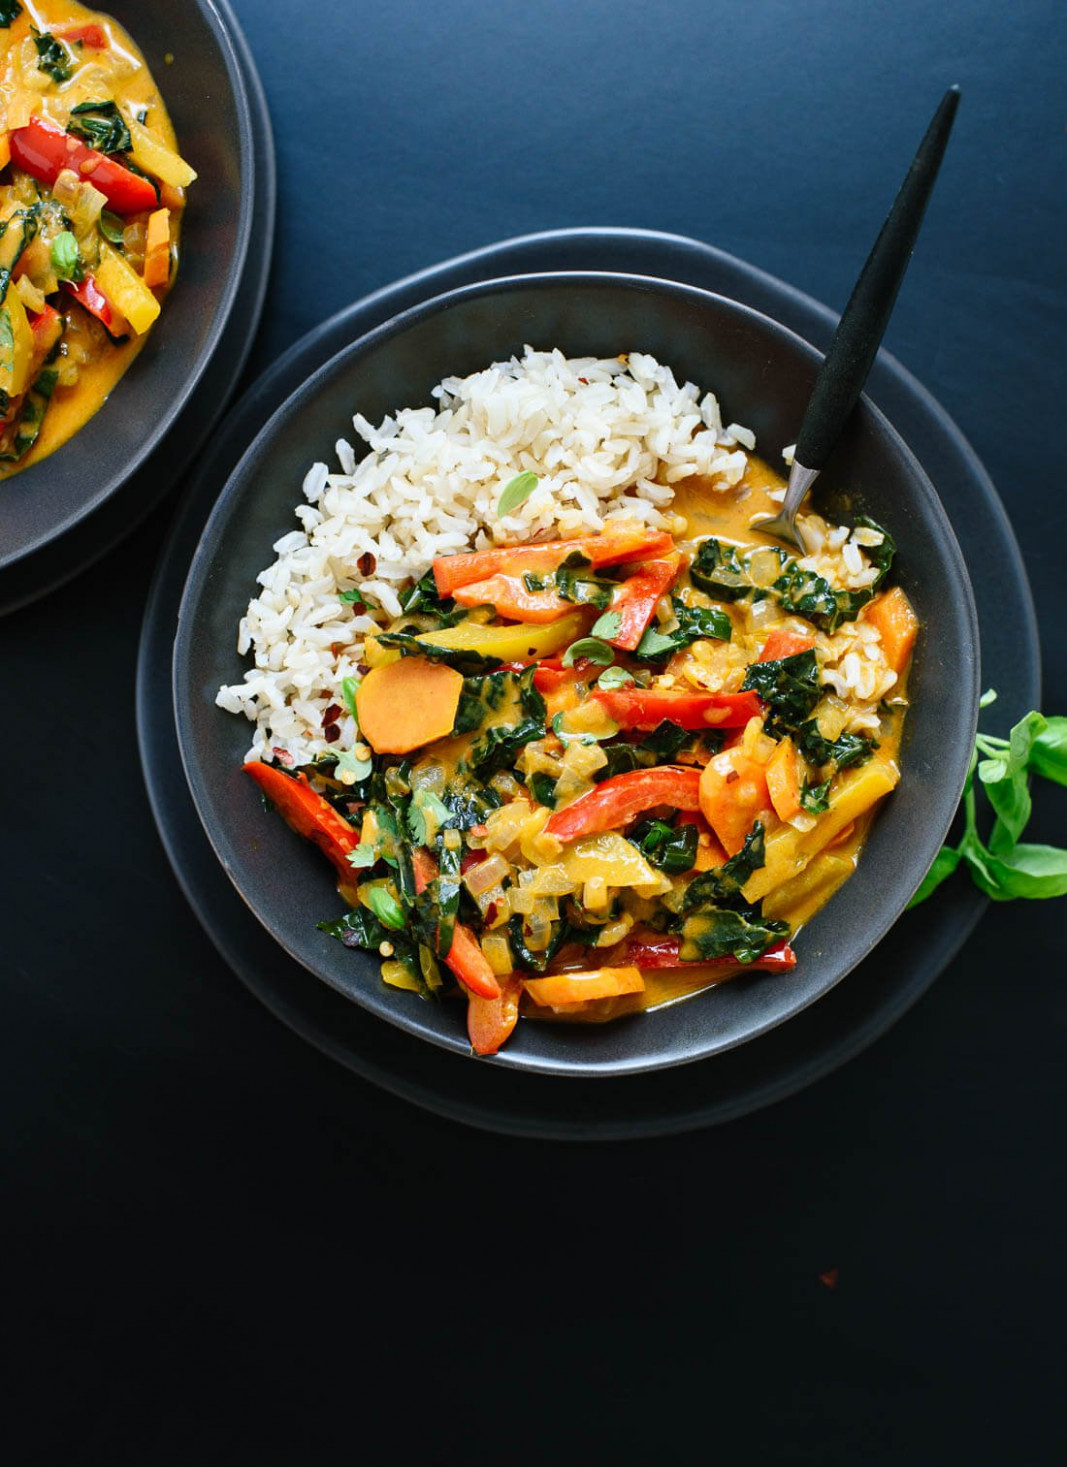 Thai Red Curry With Vegetables - Food Recipes With Rice